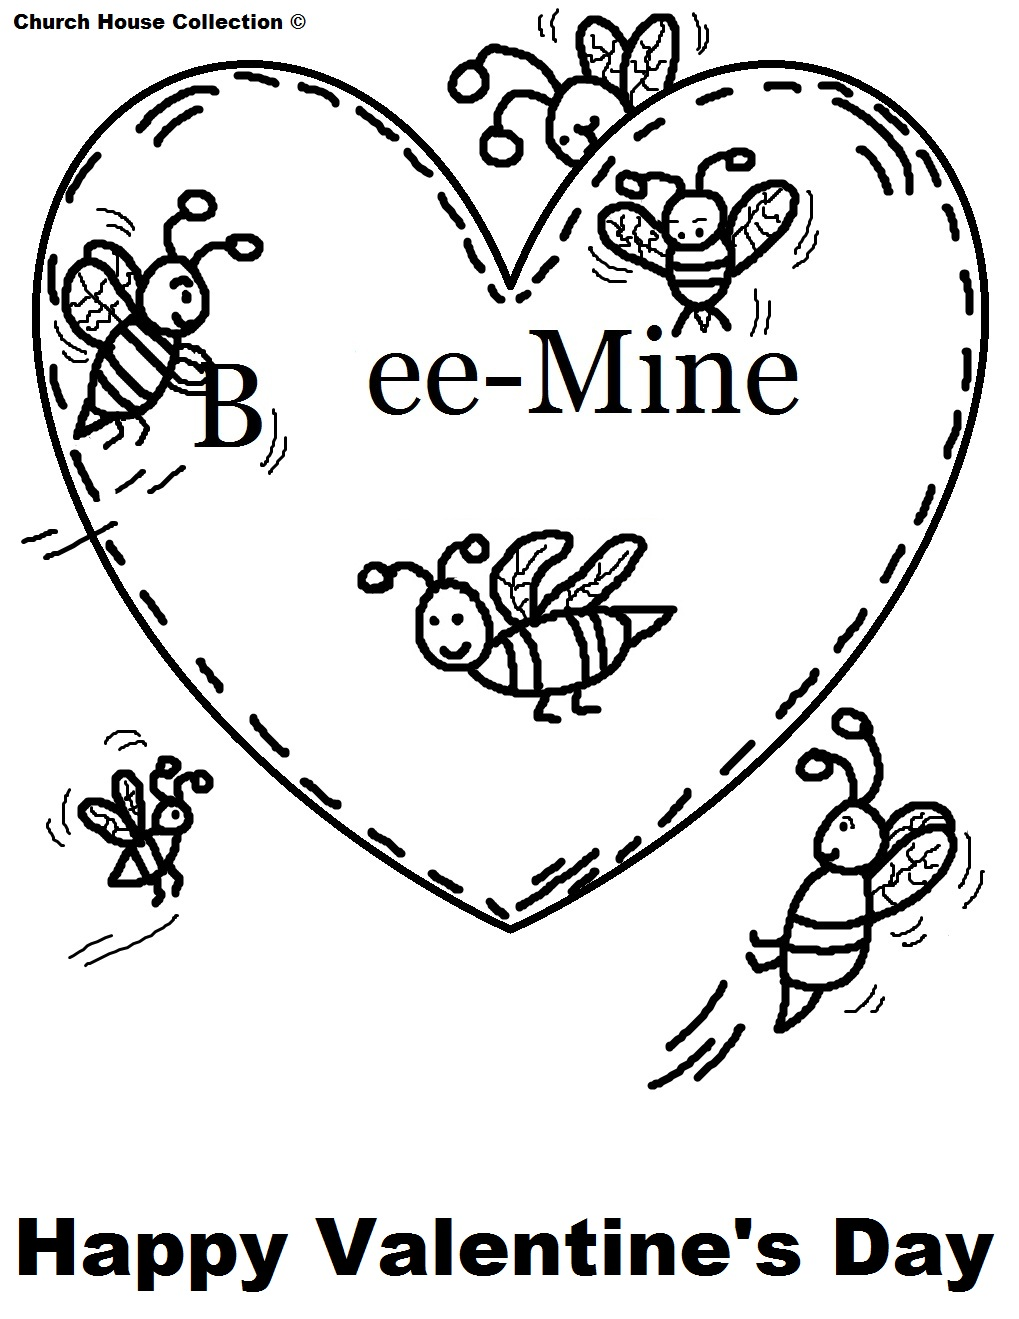 Church house collection blog valentine 39 s day coloring for Free valentine coloring pages for kids